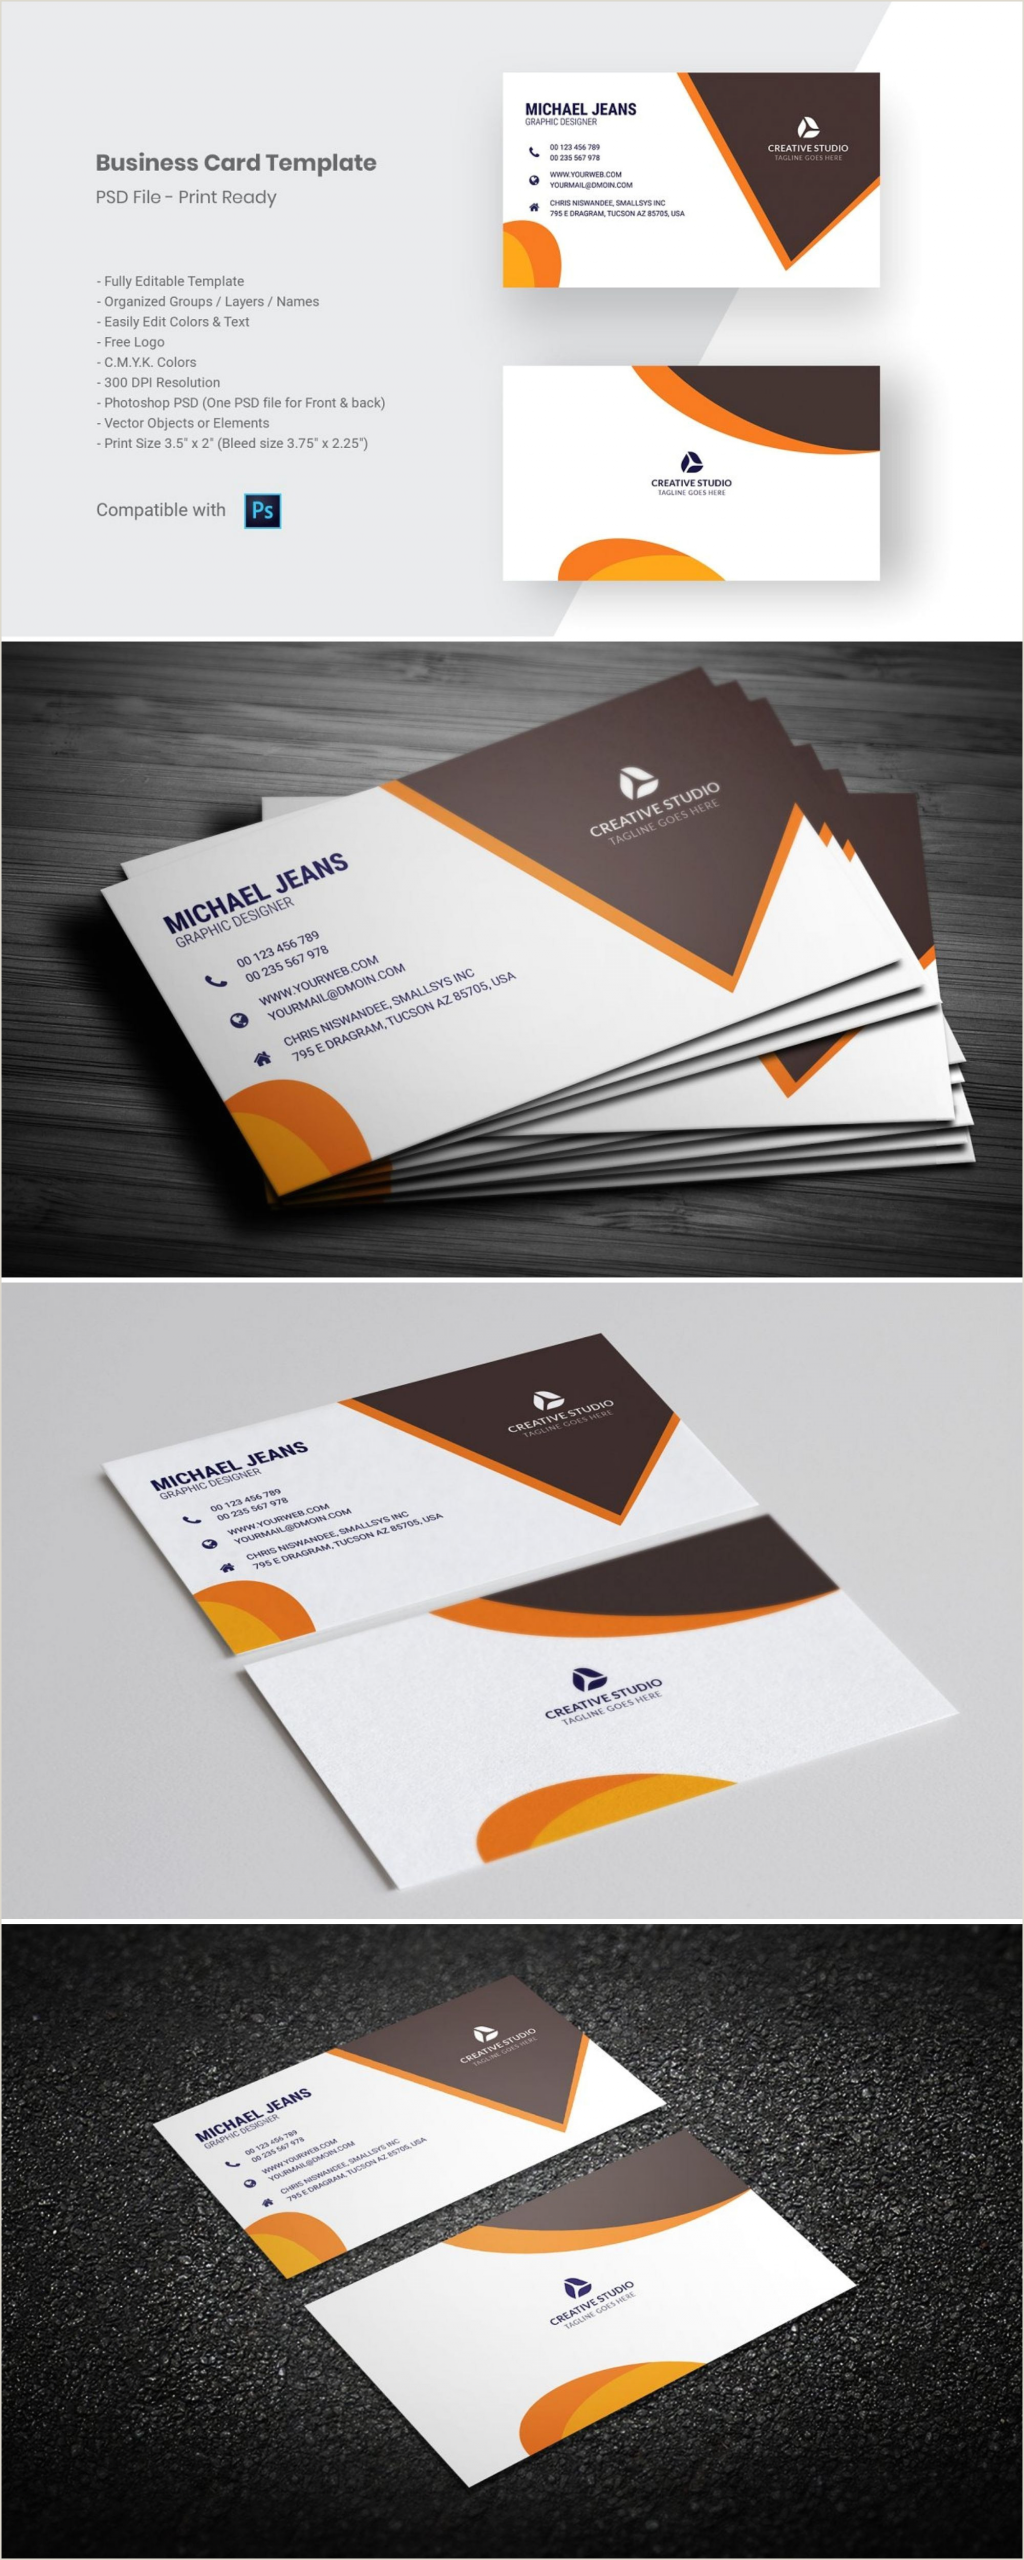 Personal Business Cards Examples Modern Business Card Template